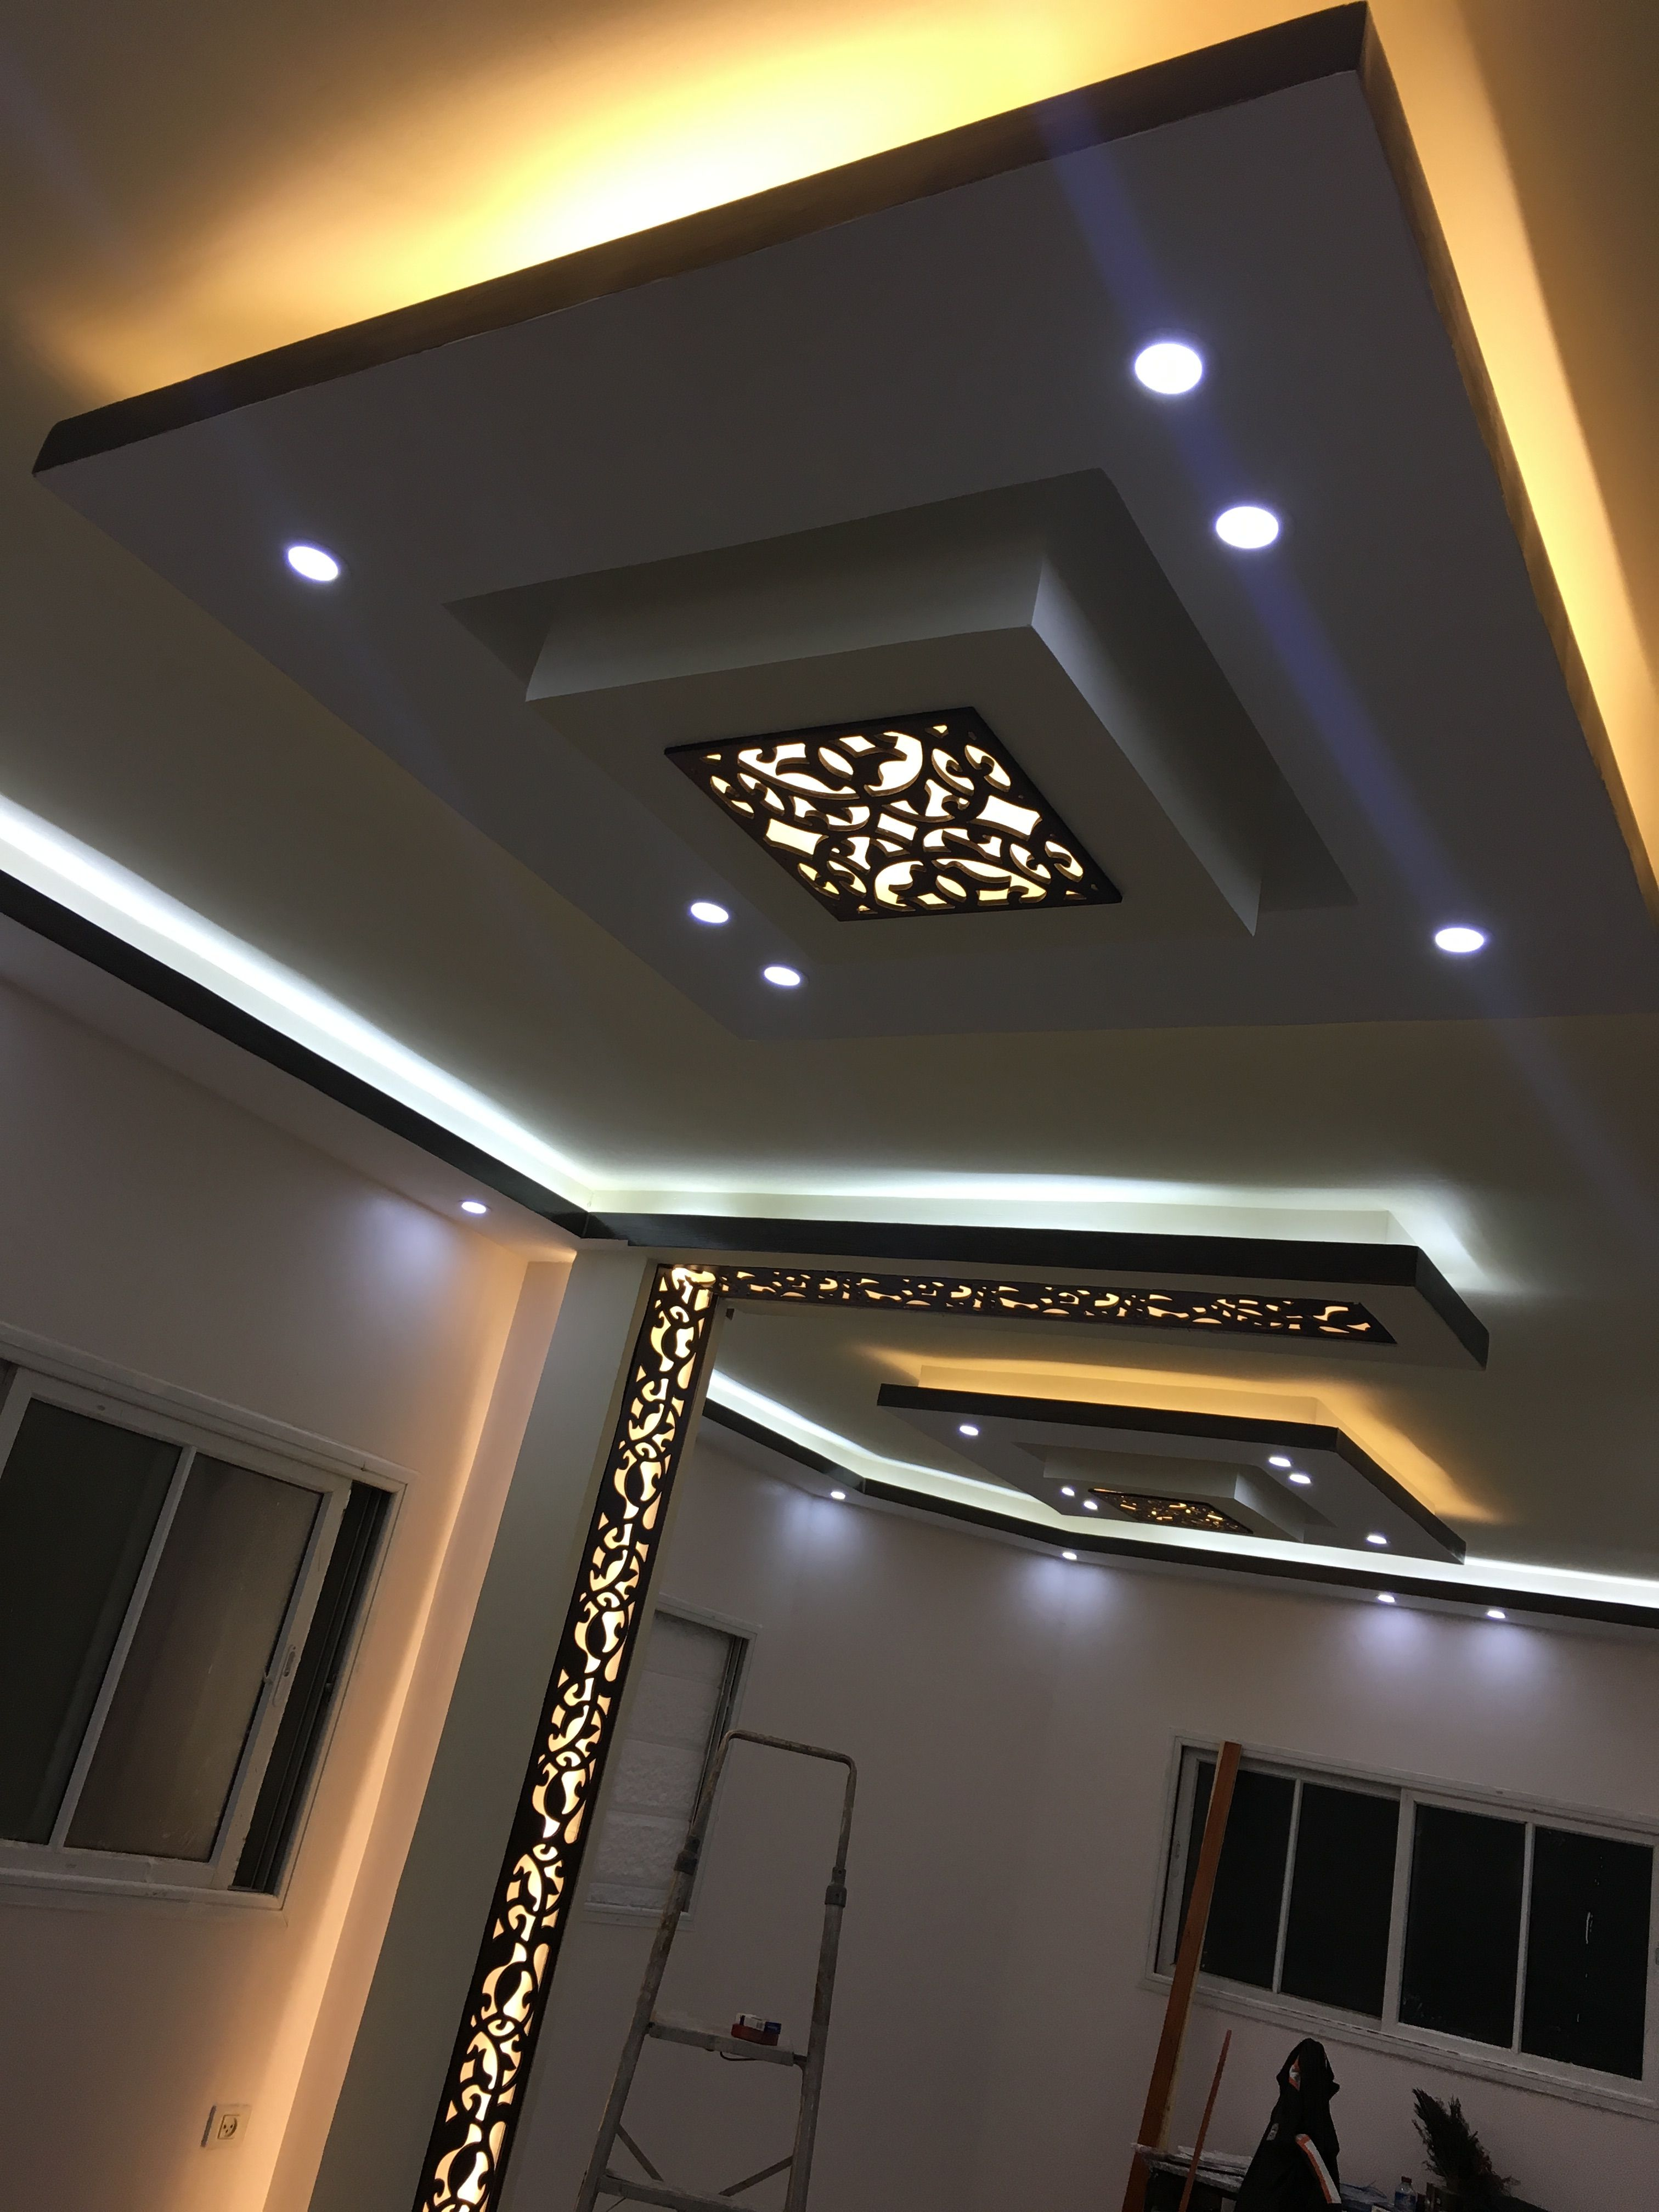 Cnc Lights Window Home Decorating Ceiling Design Ceiling Design